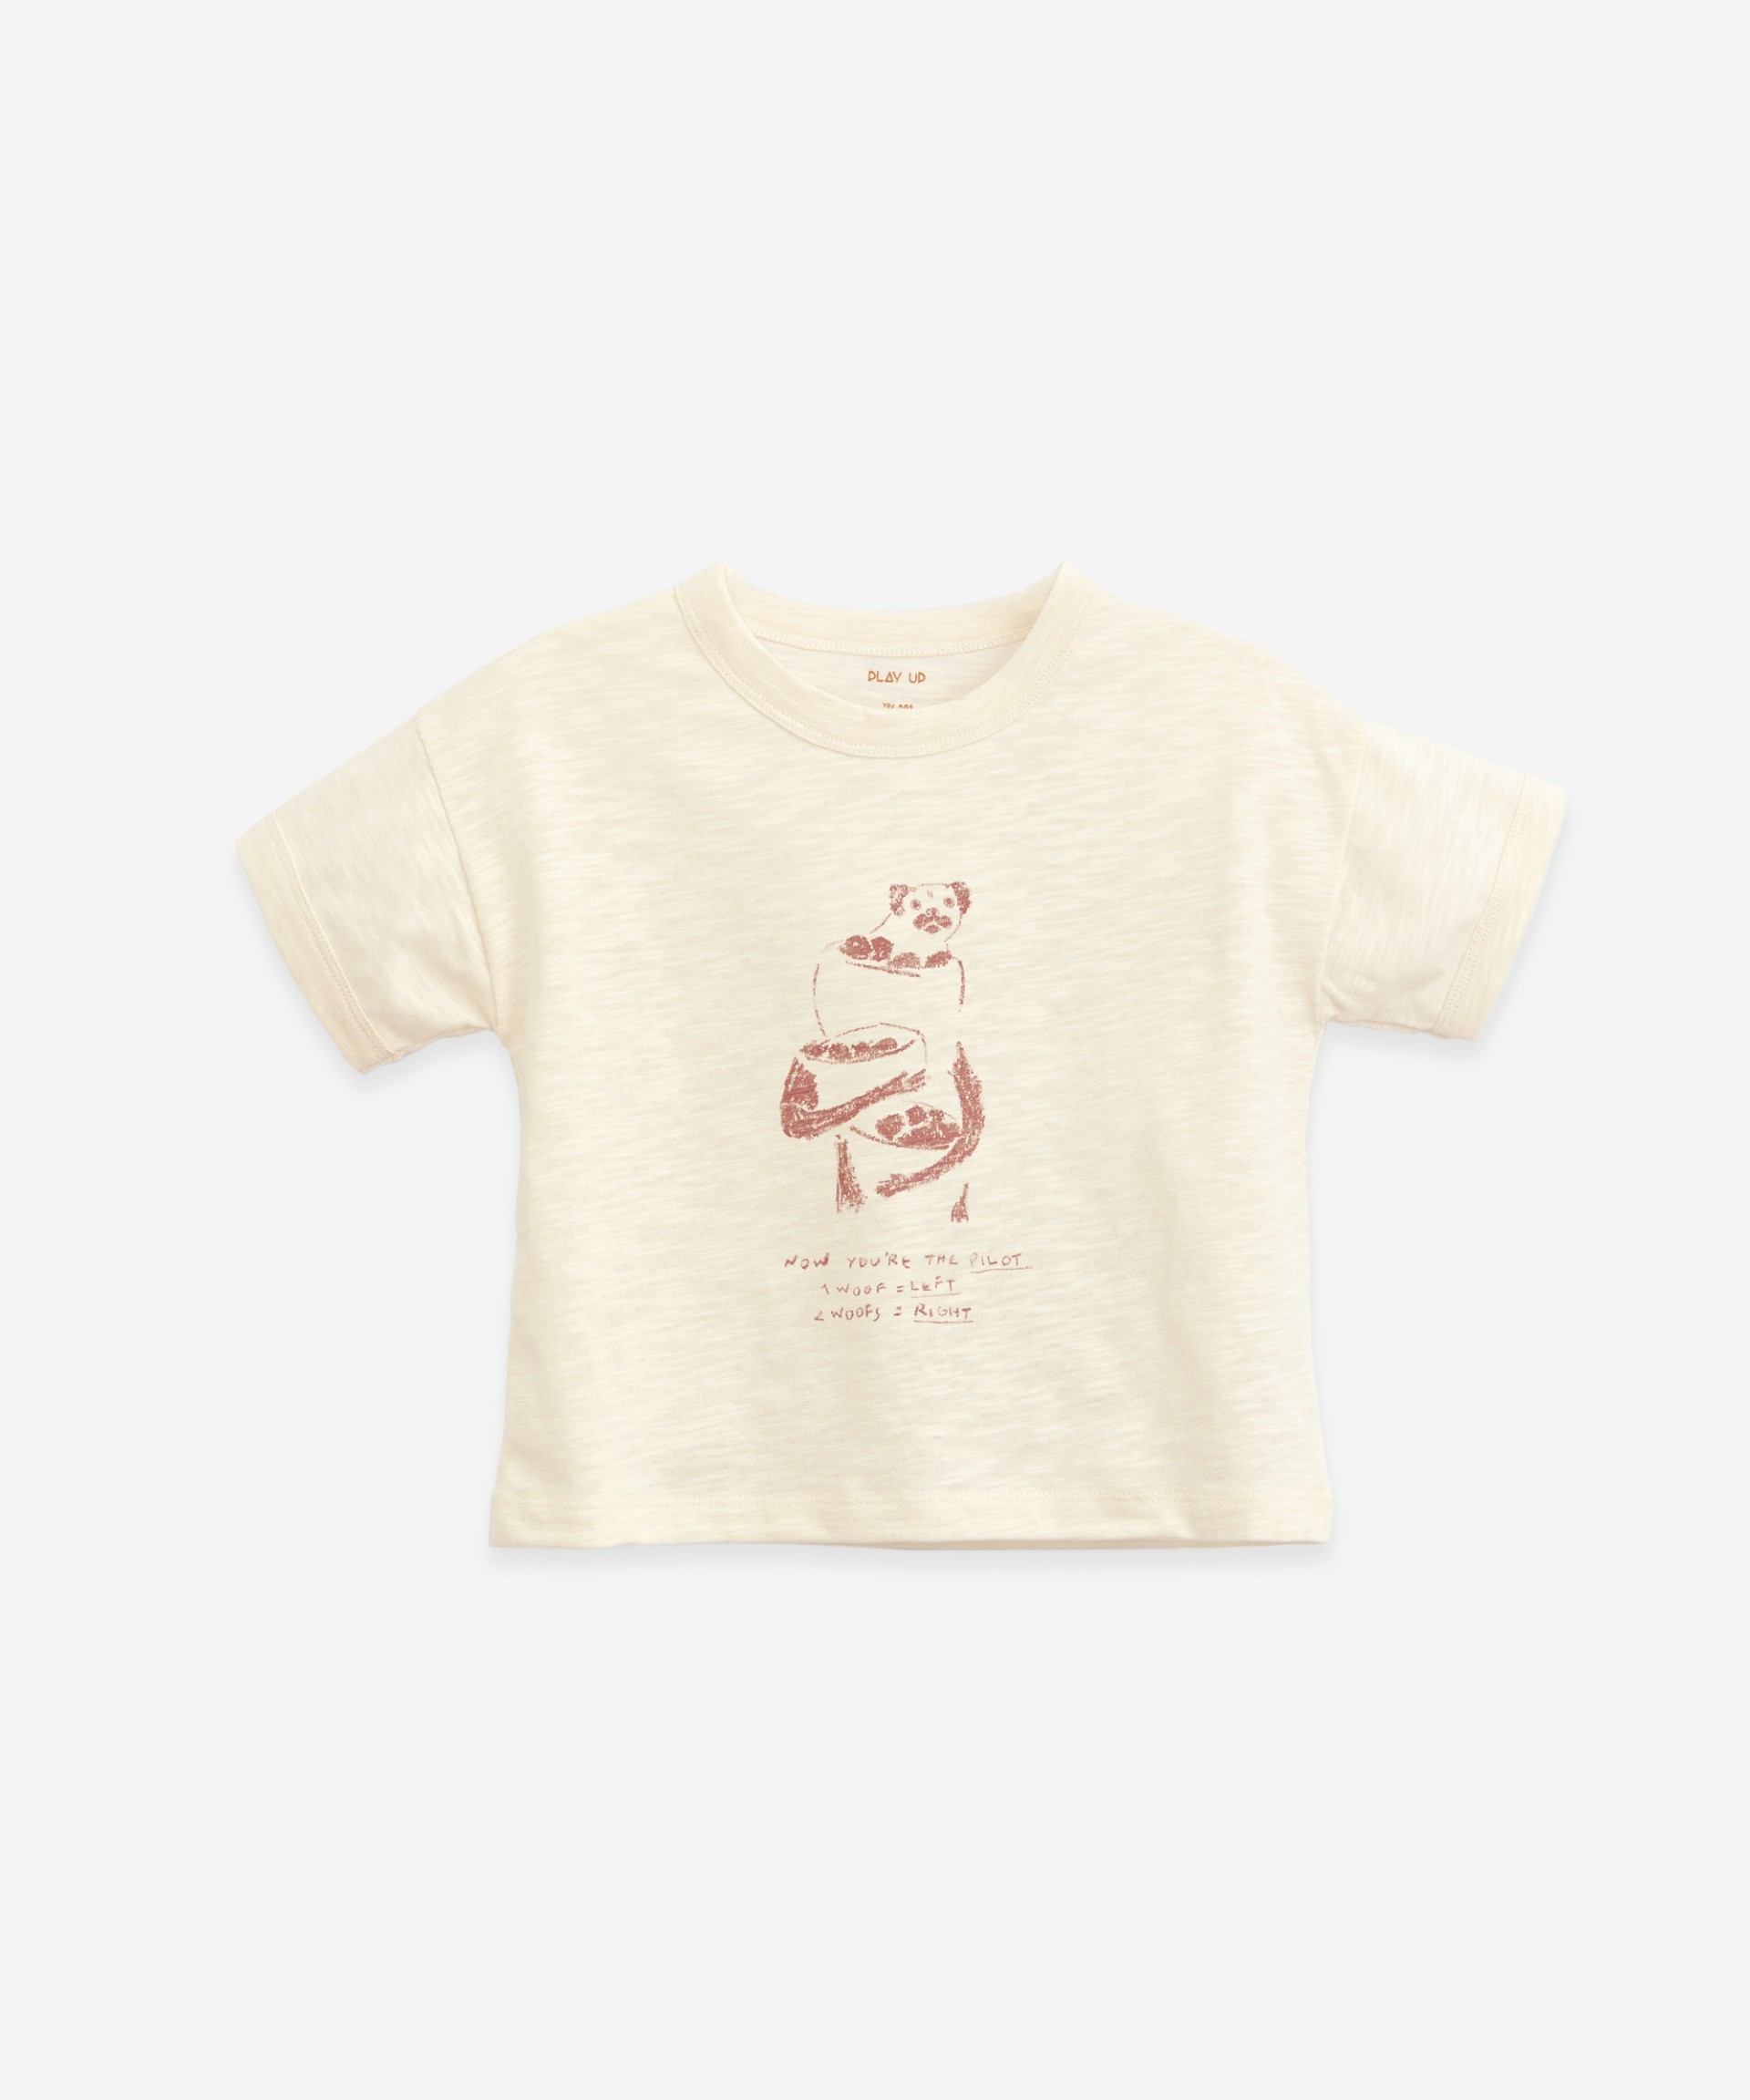 T-shirt with drawing | Botany